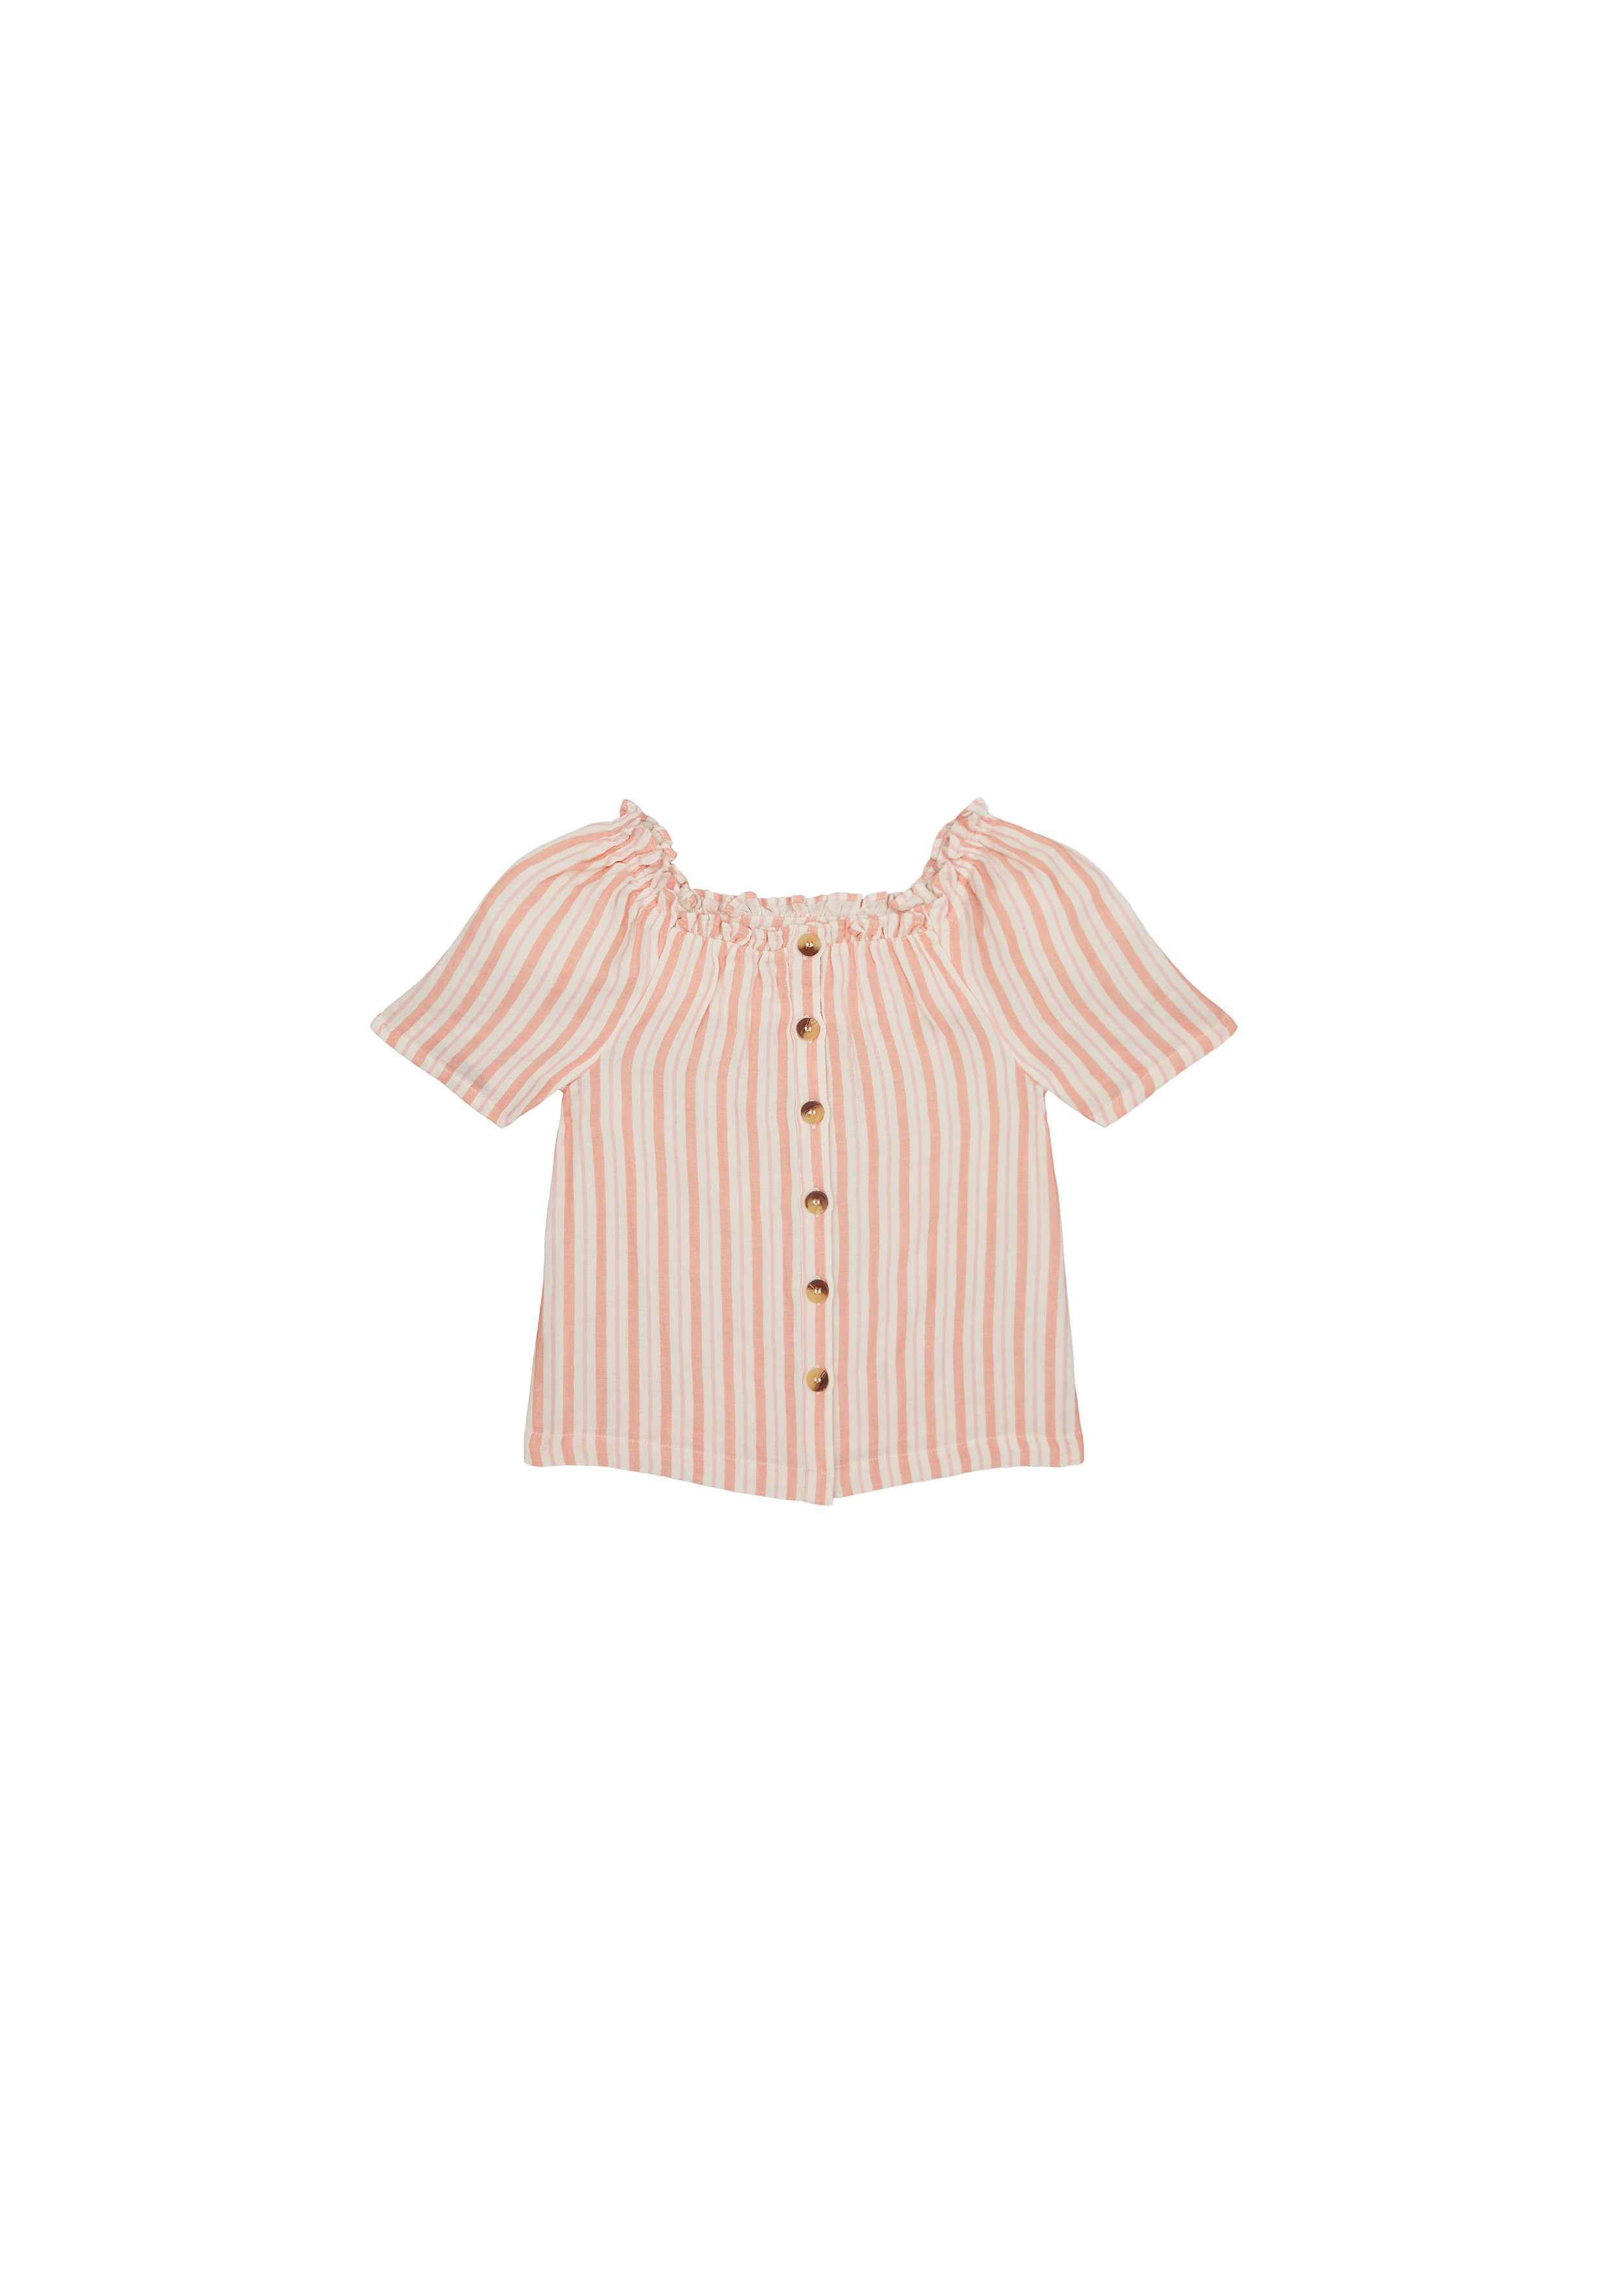 Mothercare | Girls Half Sleeves Top Striped - Multicolor